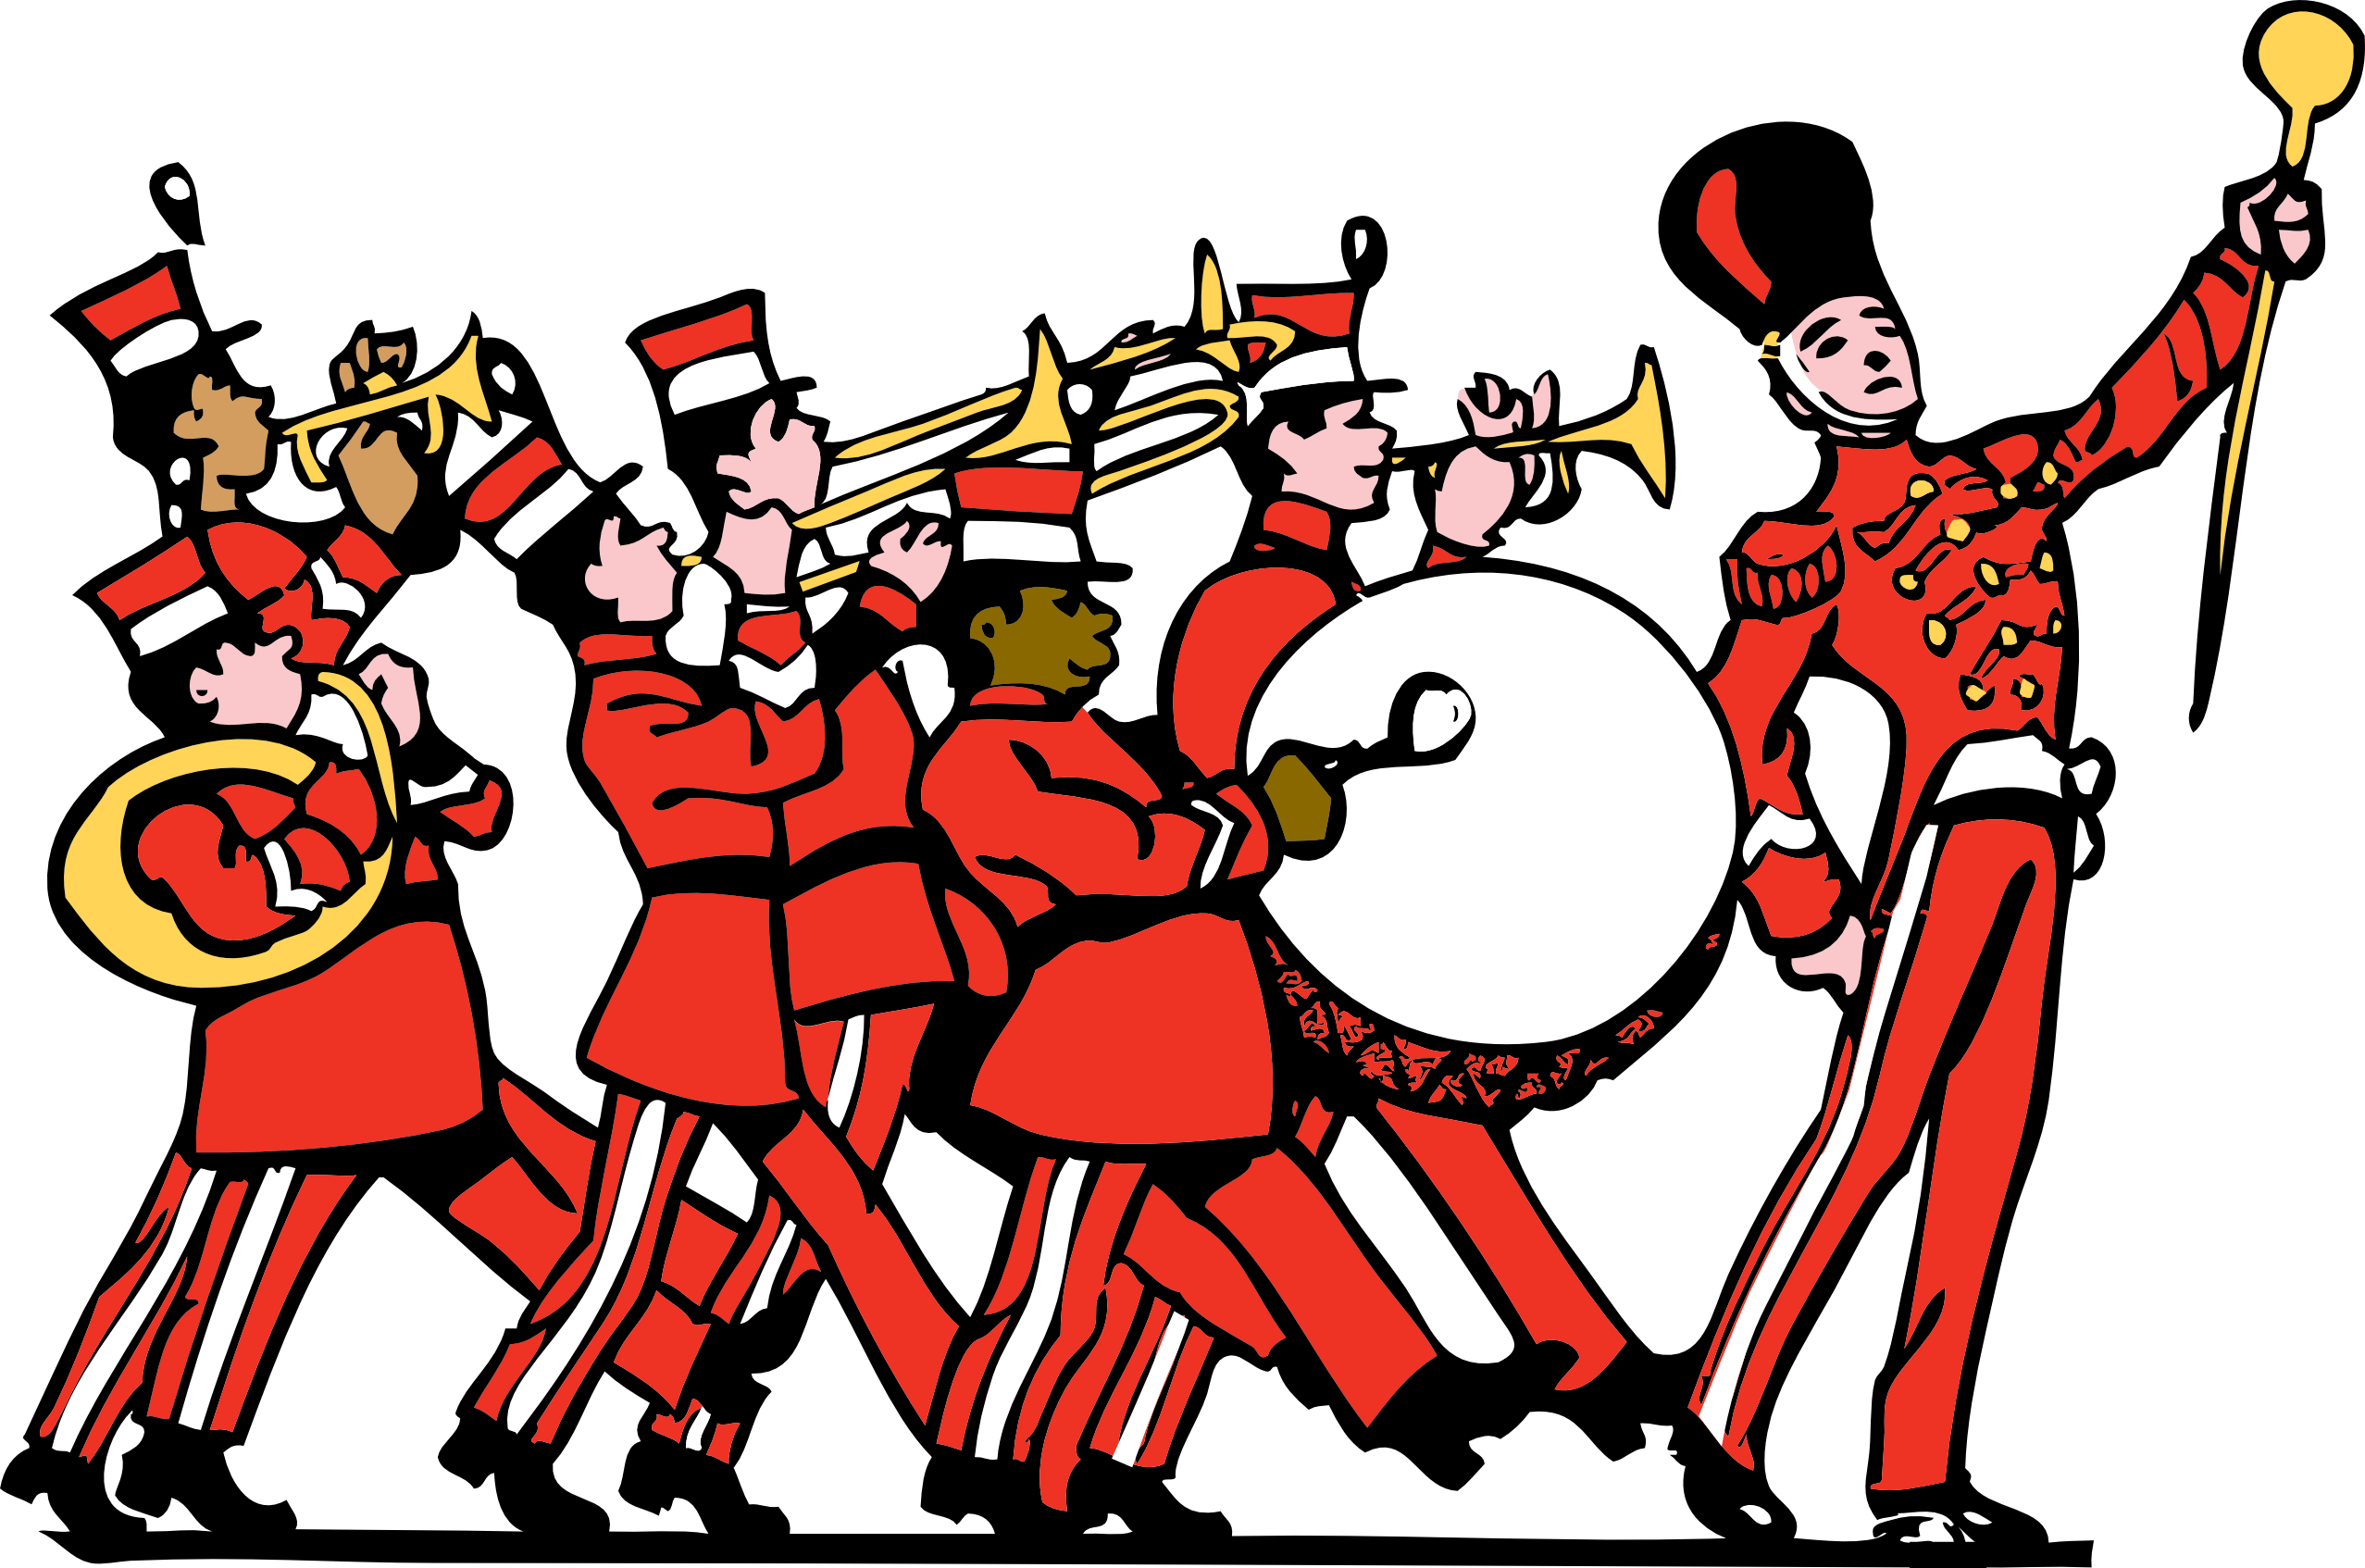 Orchestra clipart high school band, Picture #1787215.